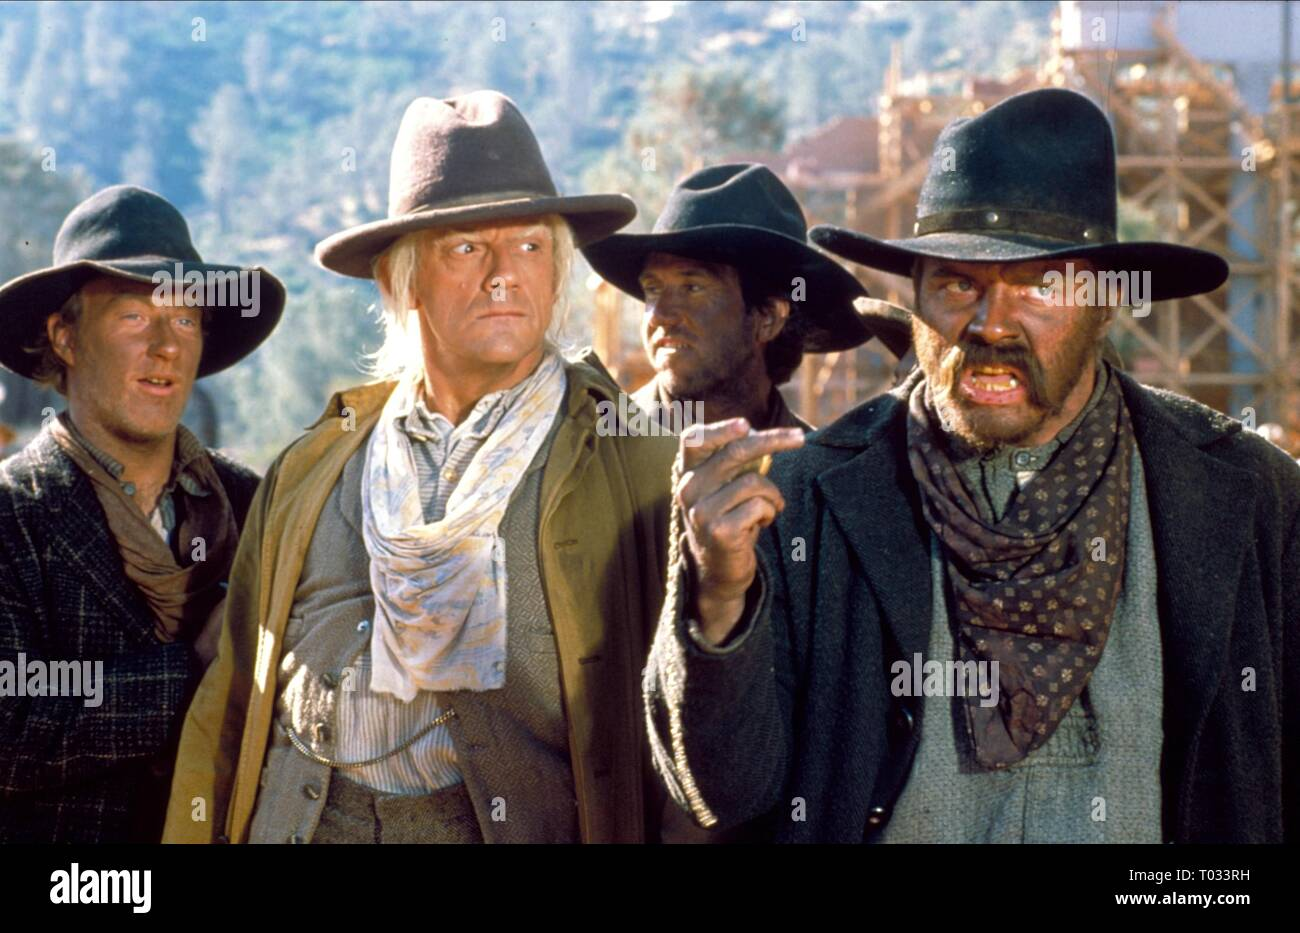 Thomas Wilson Brown High Resolution Stock Photography And Images Alamy View all thomas wilson brown pictures. https www alamy com christopher lloyd thomas f wilson back to the future part iii 1990 image241014021 html